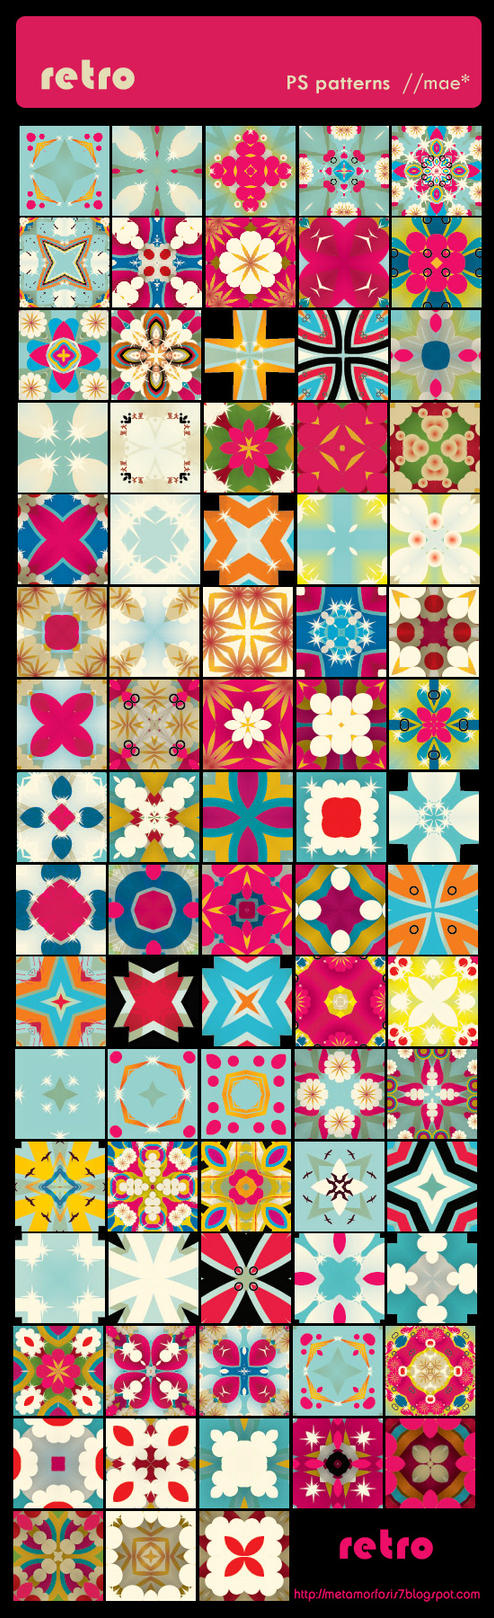 retro PS patterns by mae-b